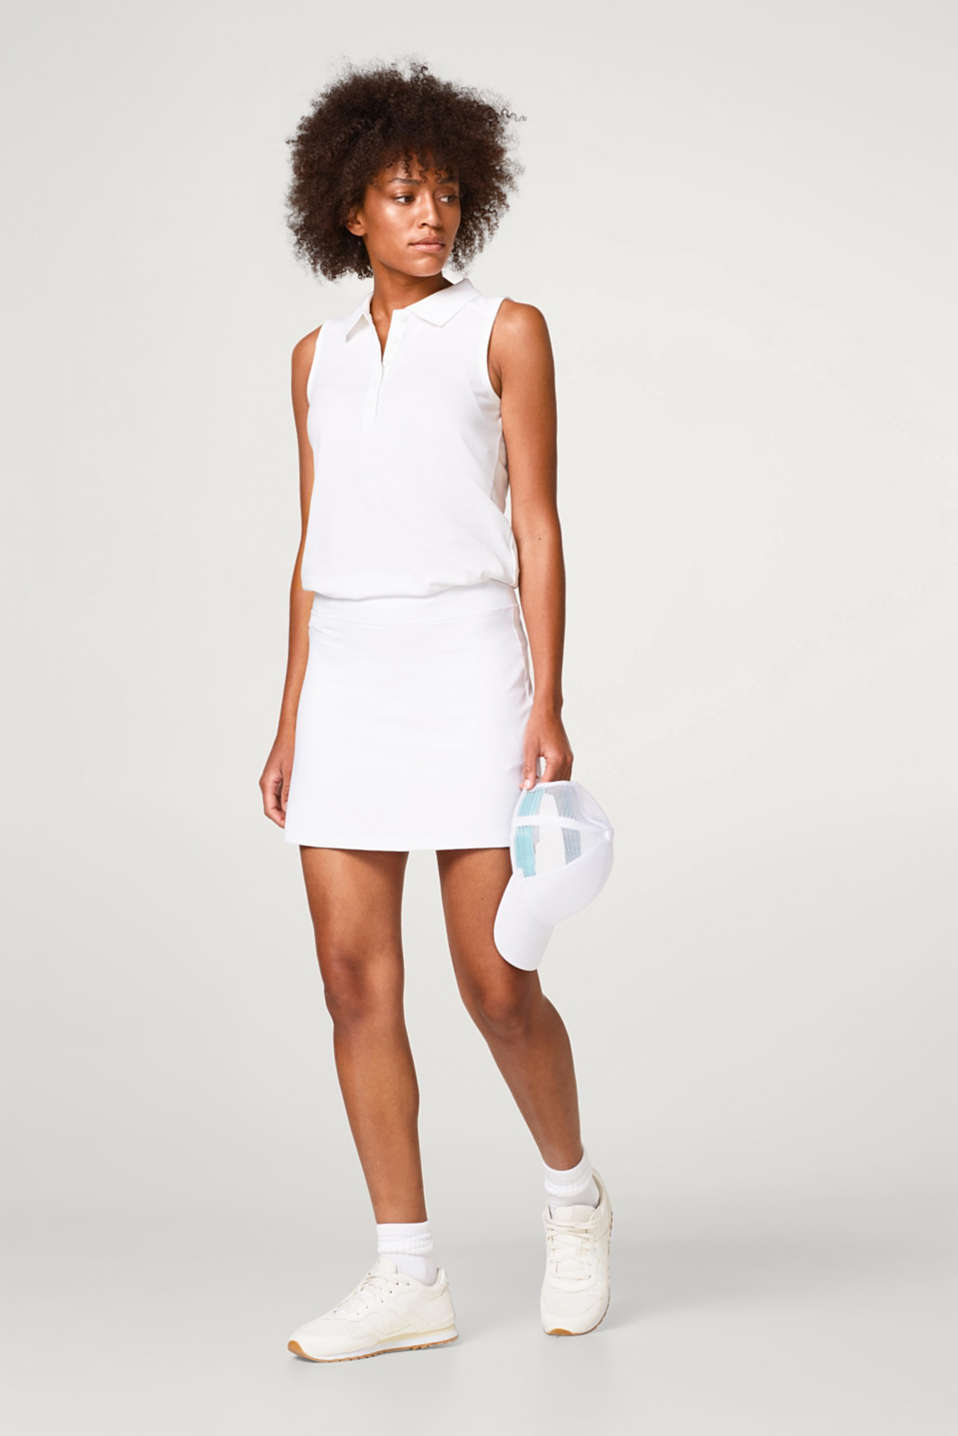 Tennis skirt with integrated shorts, E-DRY